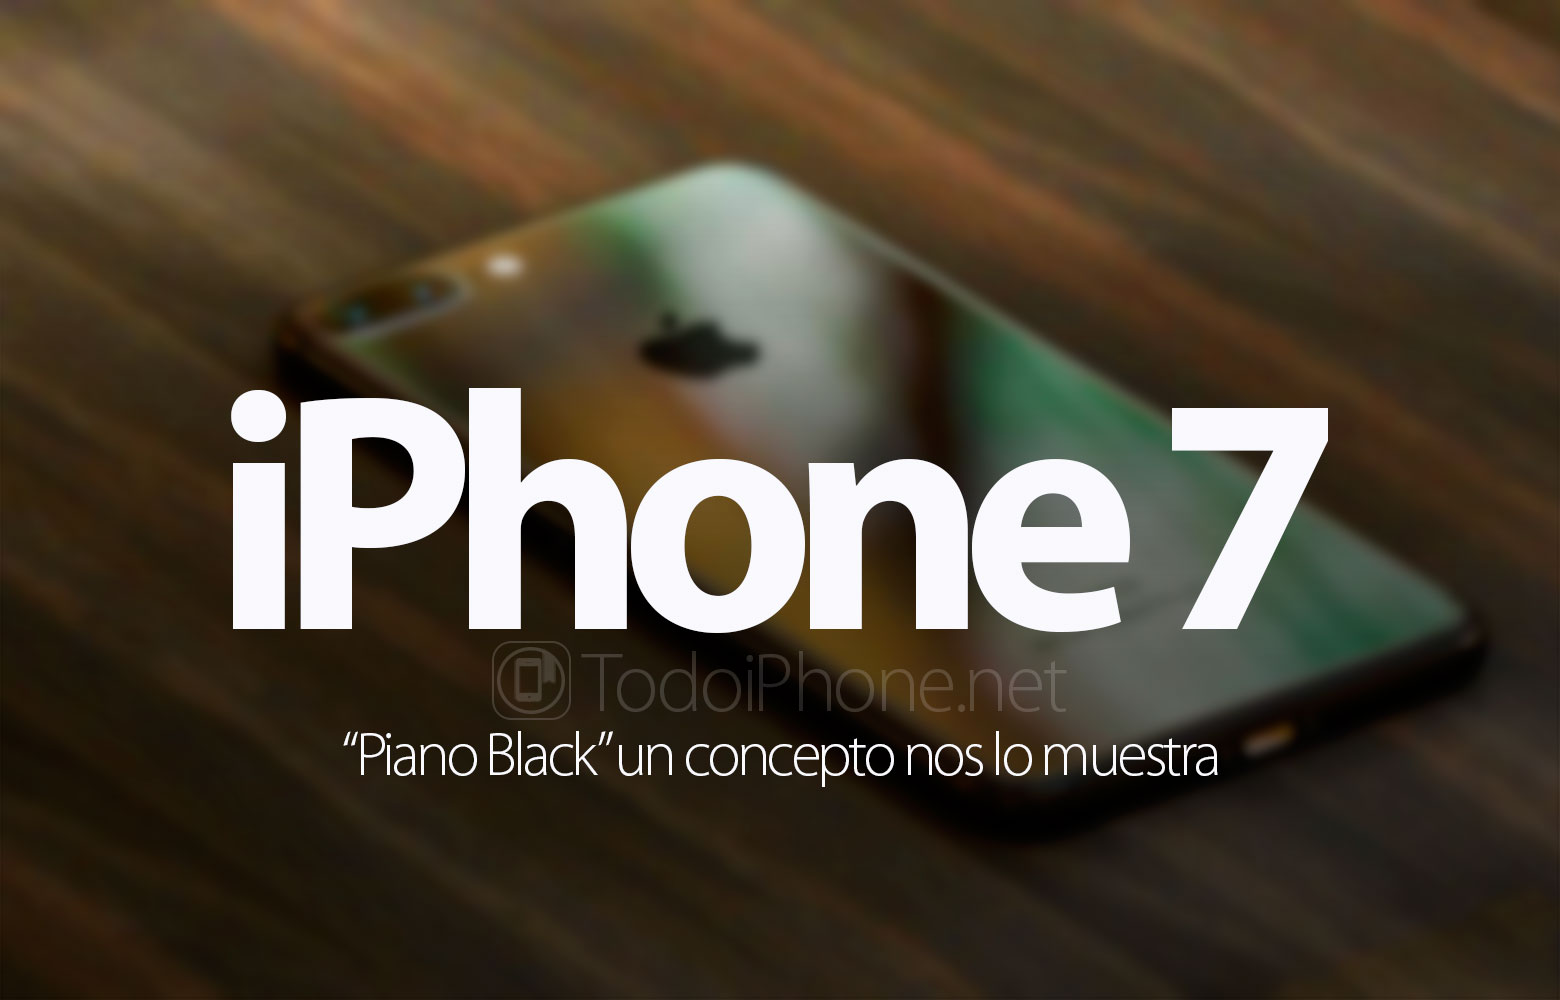 iphone-7-piano-black-concepto